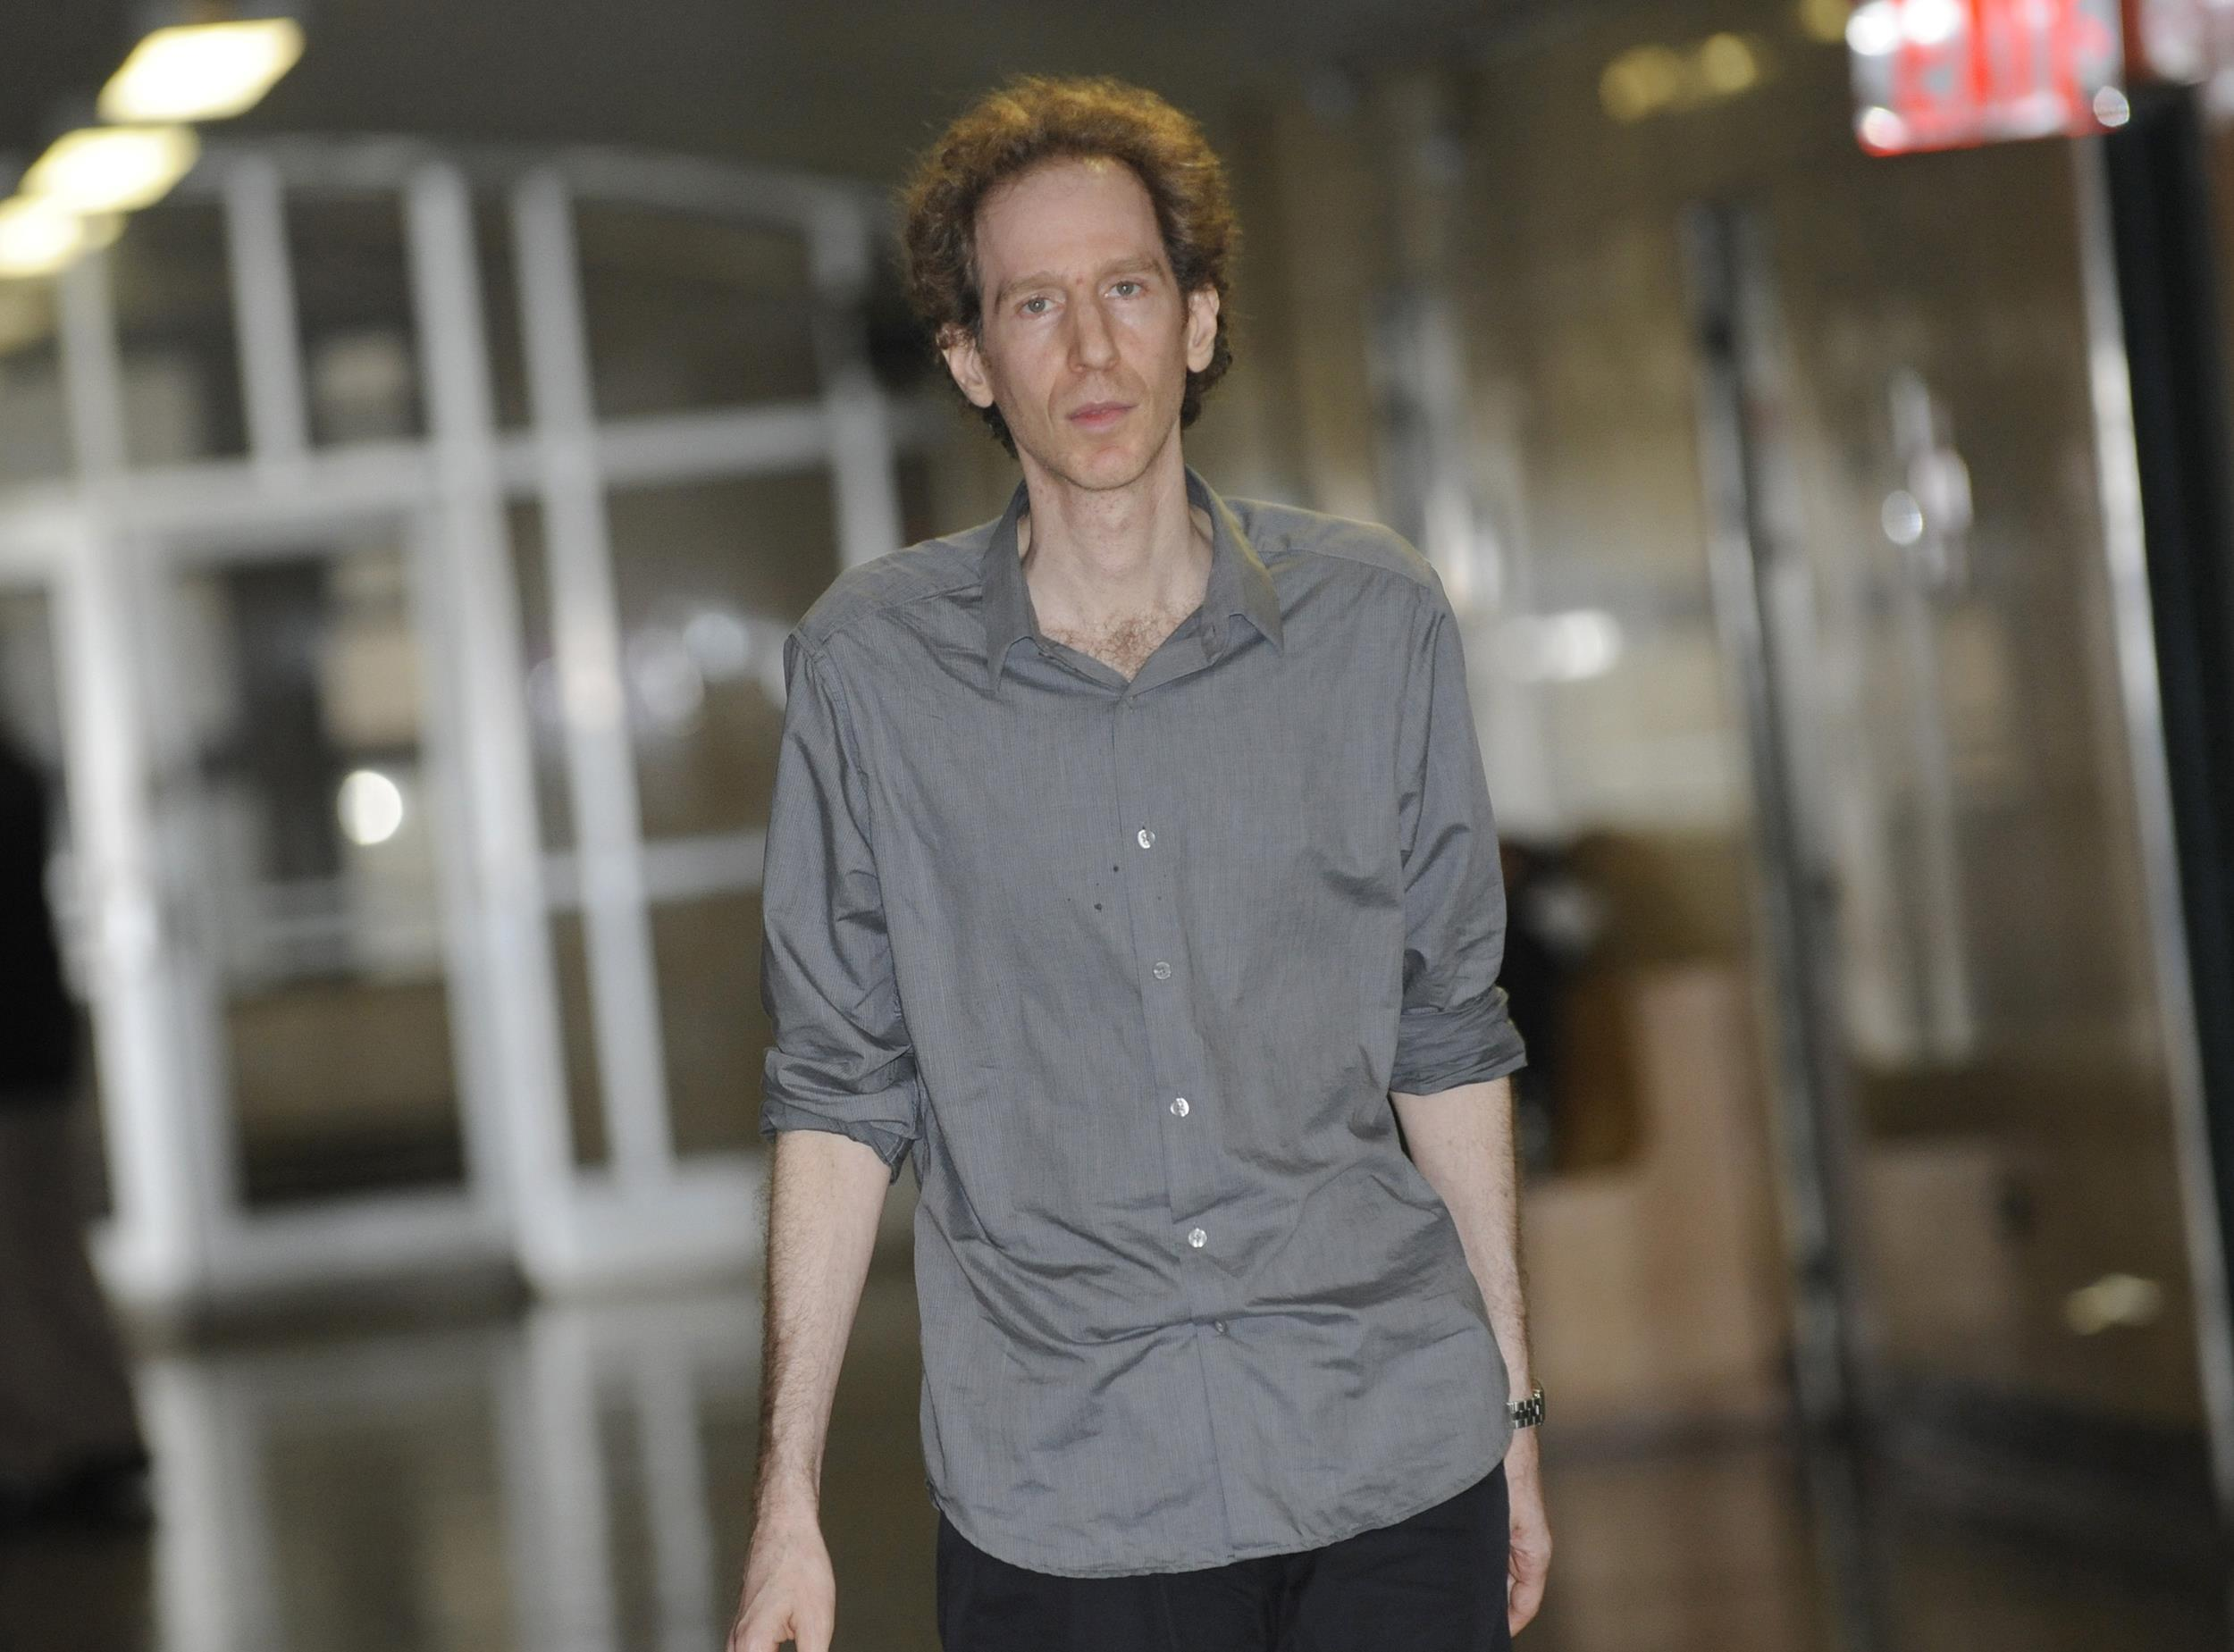 Image: Raphael Golb enters a courtroom in New York on Sept. 27, 2010